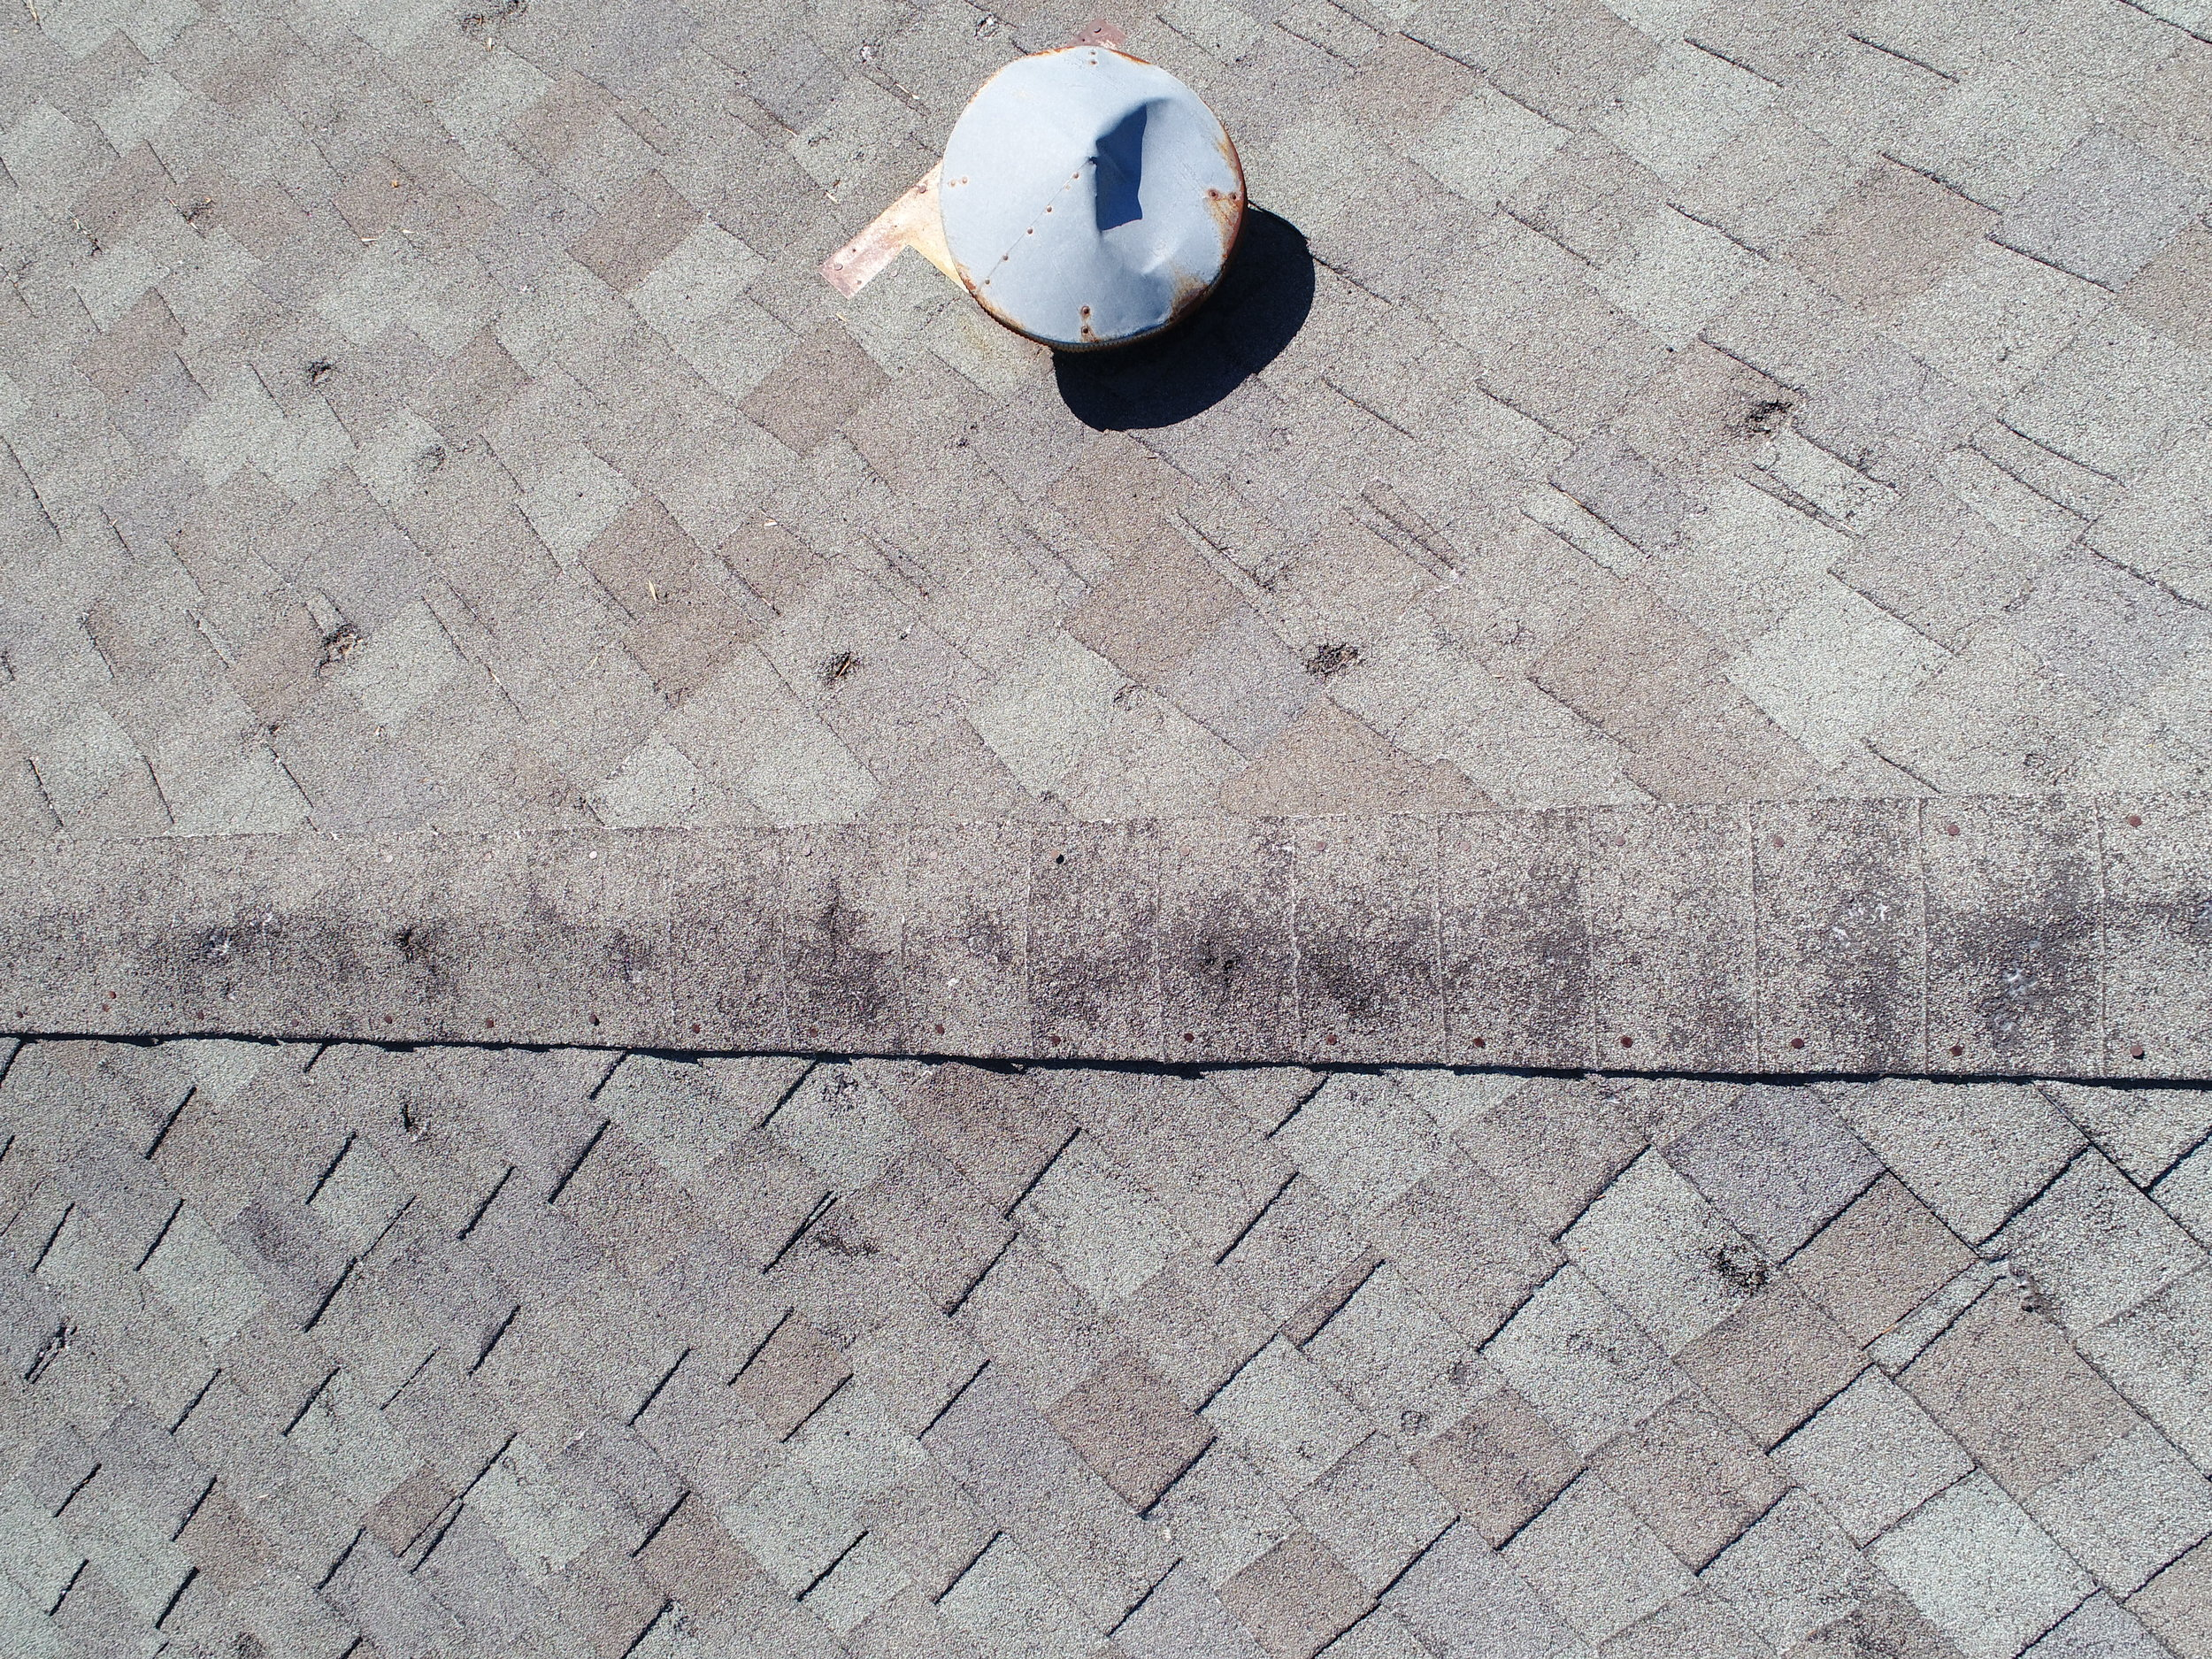 hail damage inspection with drone